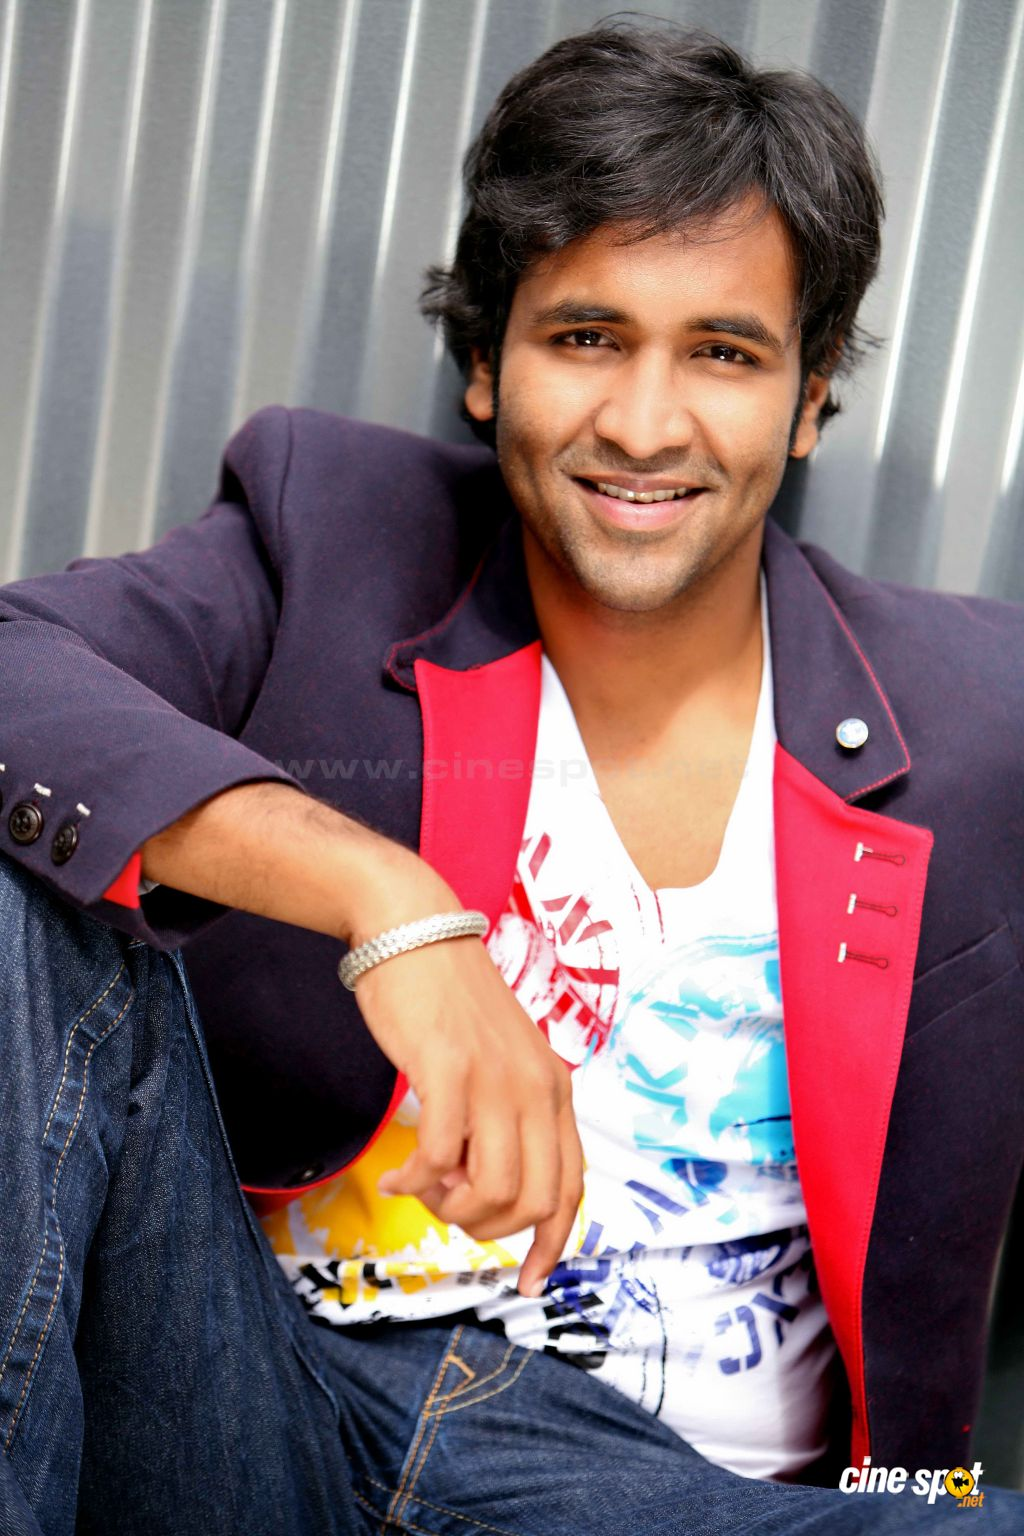 vishnu manchu weddingvishnu manchu movies, vishnu manchu wife, vishnu manchu twitter, vishnu manchu daughters, vishnu manchu wife viranica, vishnu manchu new movie, vishnu manchu wedding, vishnu manchu facebook, vishnu manchu height, vishnu manchu instagram, vishnu manchu damn, vishnu manchu movies list, vishnu manchu art foundation, vishnu manchu hansika motwani, vishnu manchu songs, vishnu manchu family, vishnu manchu all movies, vishnu manchu date of birth, vishnu manchu daughters names, vishnu manchu photos